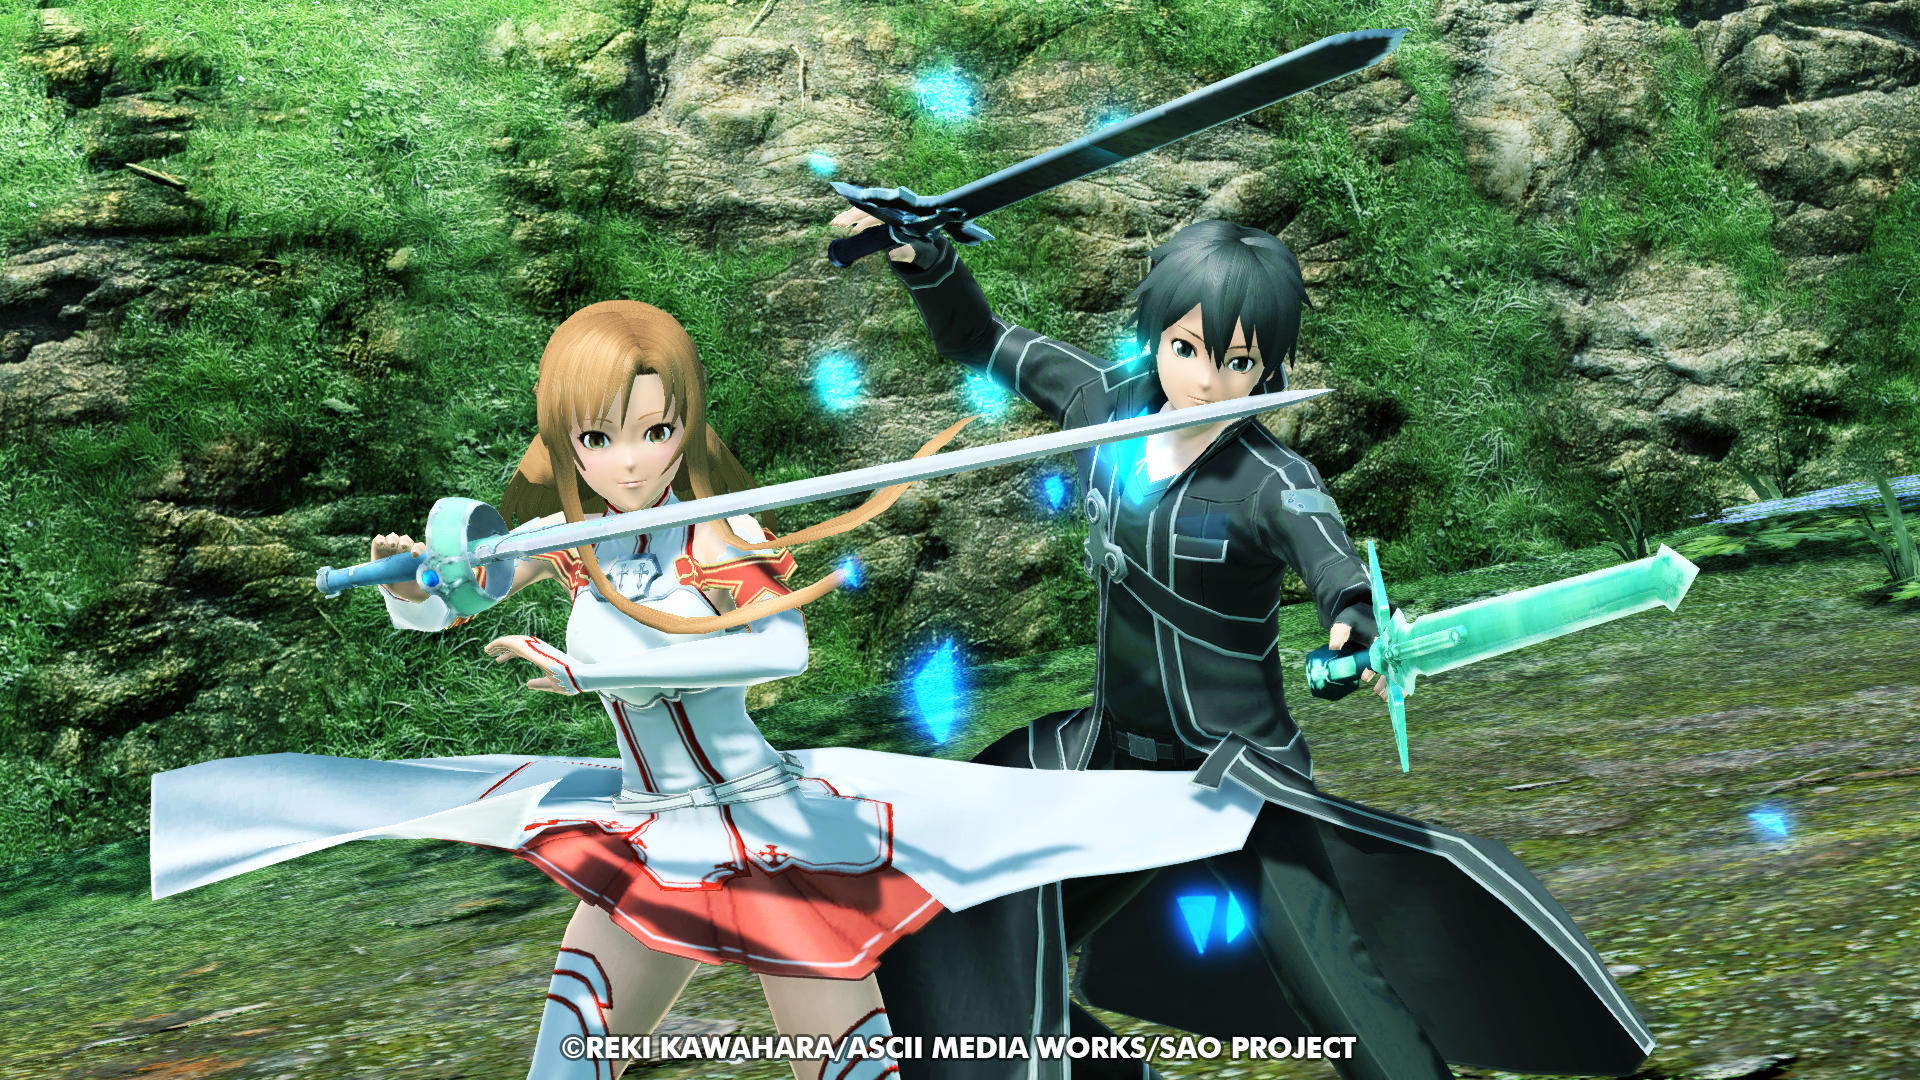 Phantasy Star Online 2 screenshot of a boy in a trenchcoat and girl in skirt each holding swords in a nature setting.